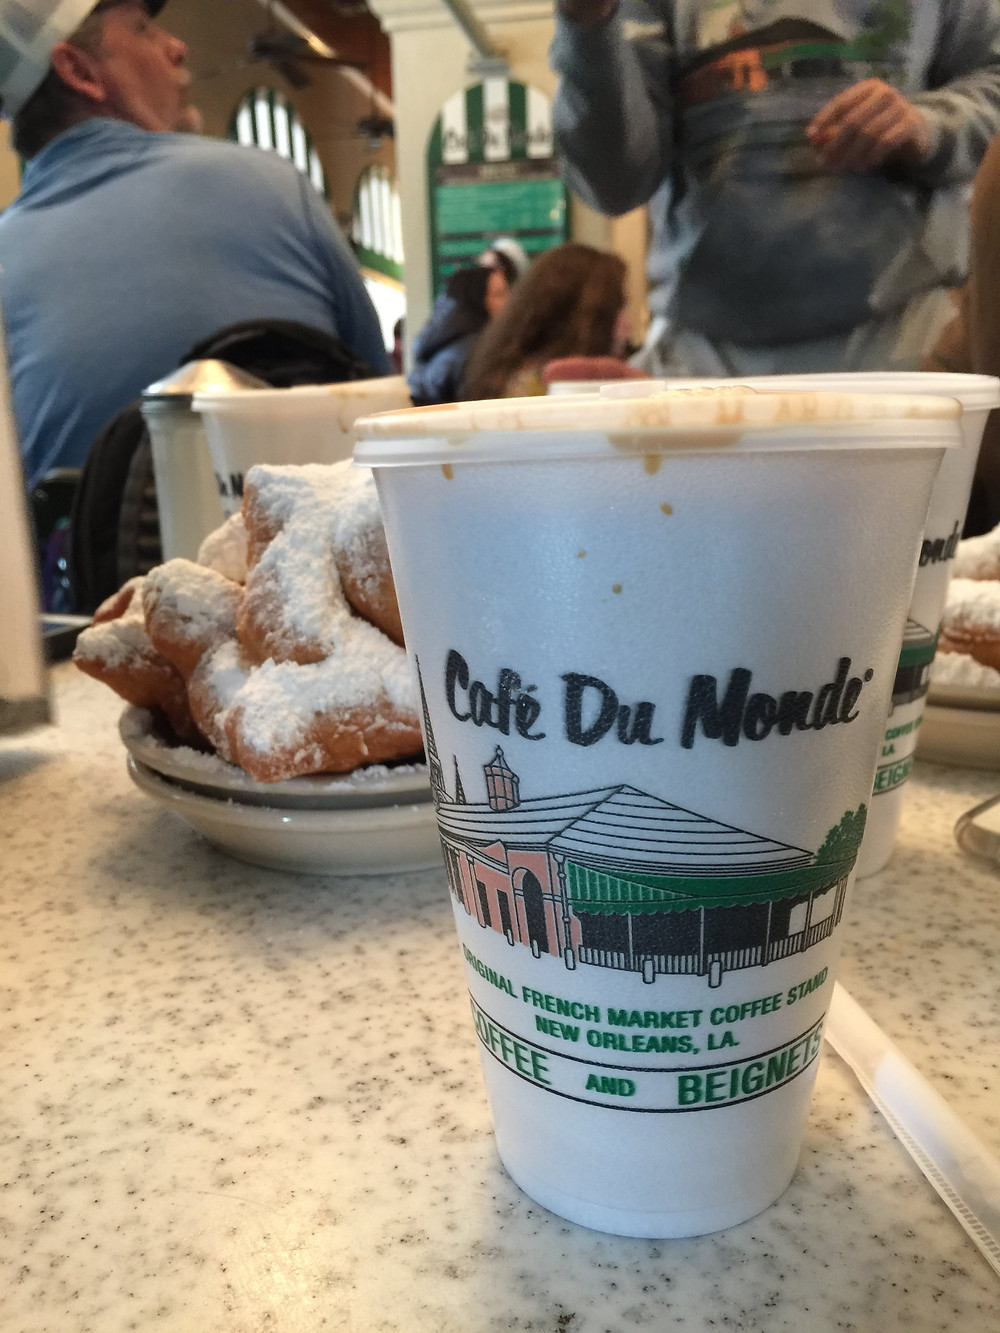 Cafe du Monde styrofoam cup and beignets